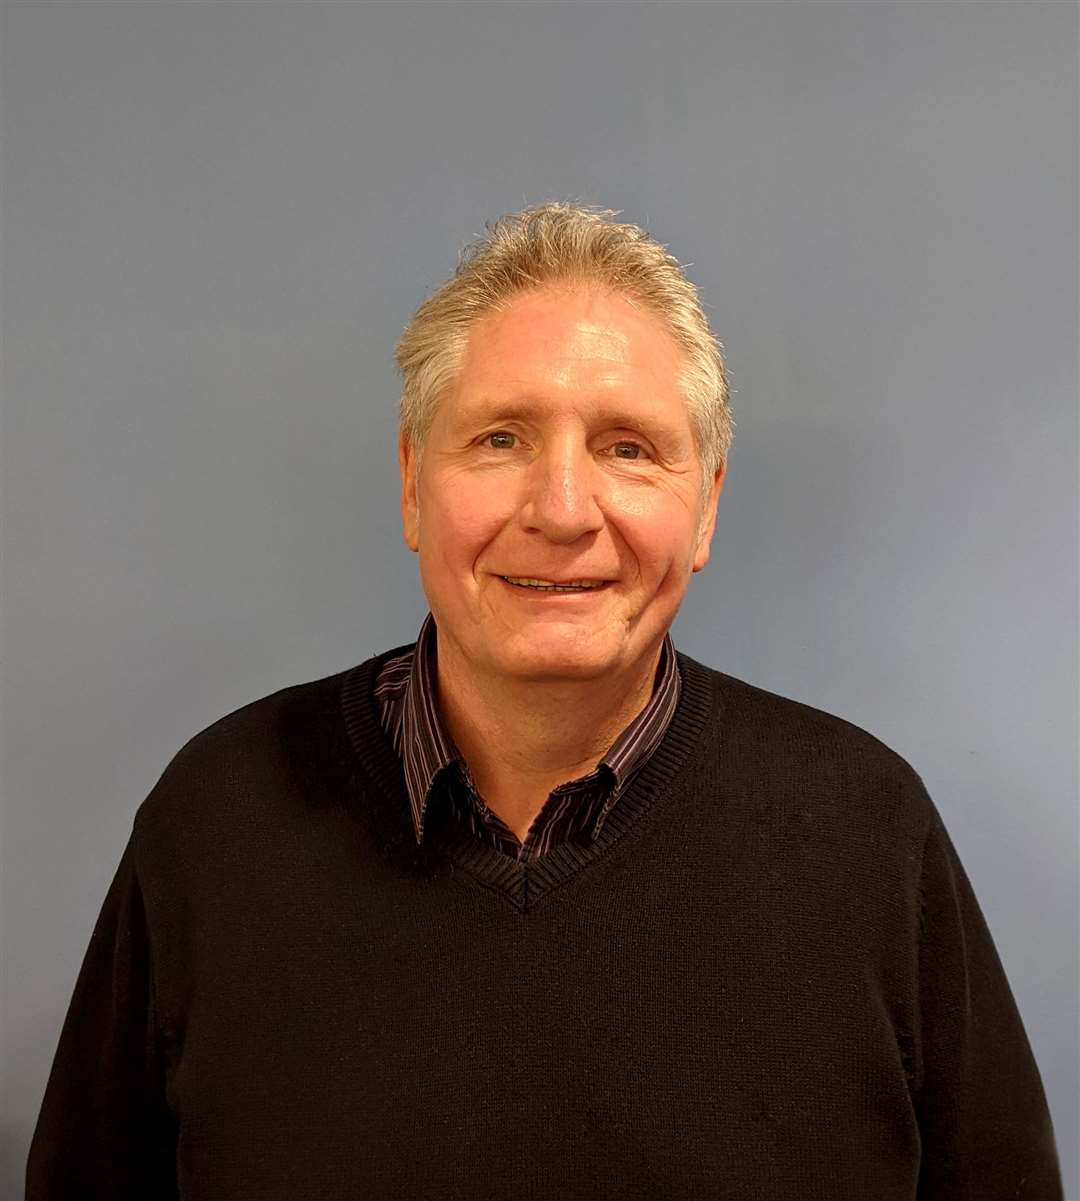 Graham Wilson has joined Freebridge's leadership team. Picture: SUBMITTED